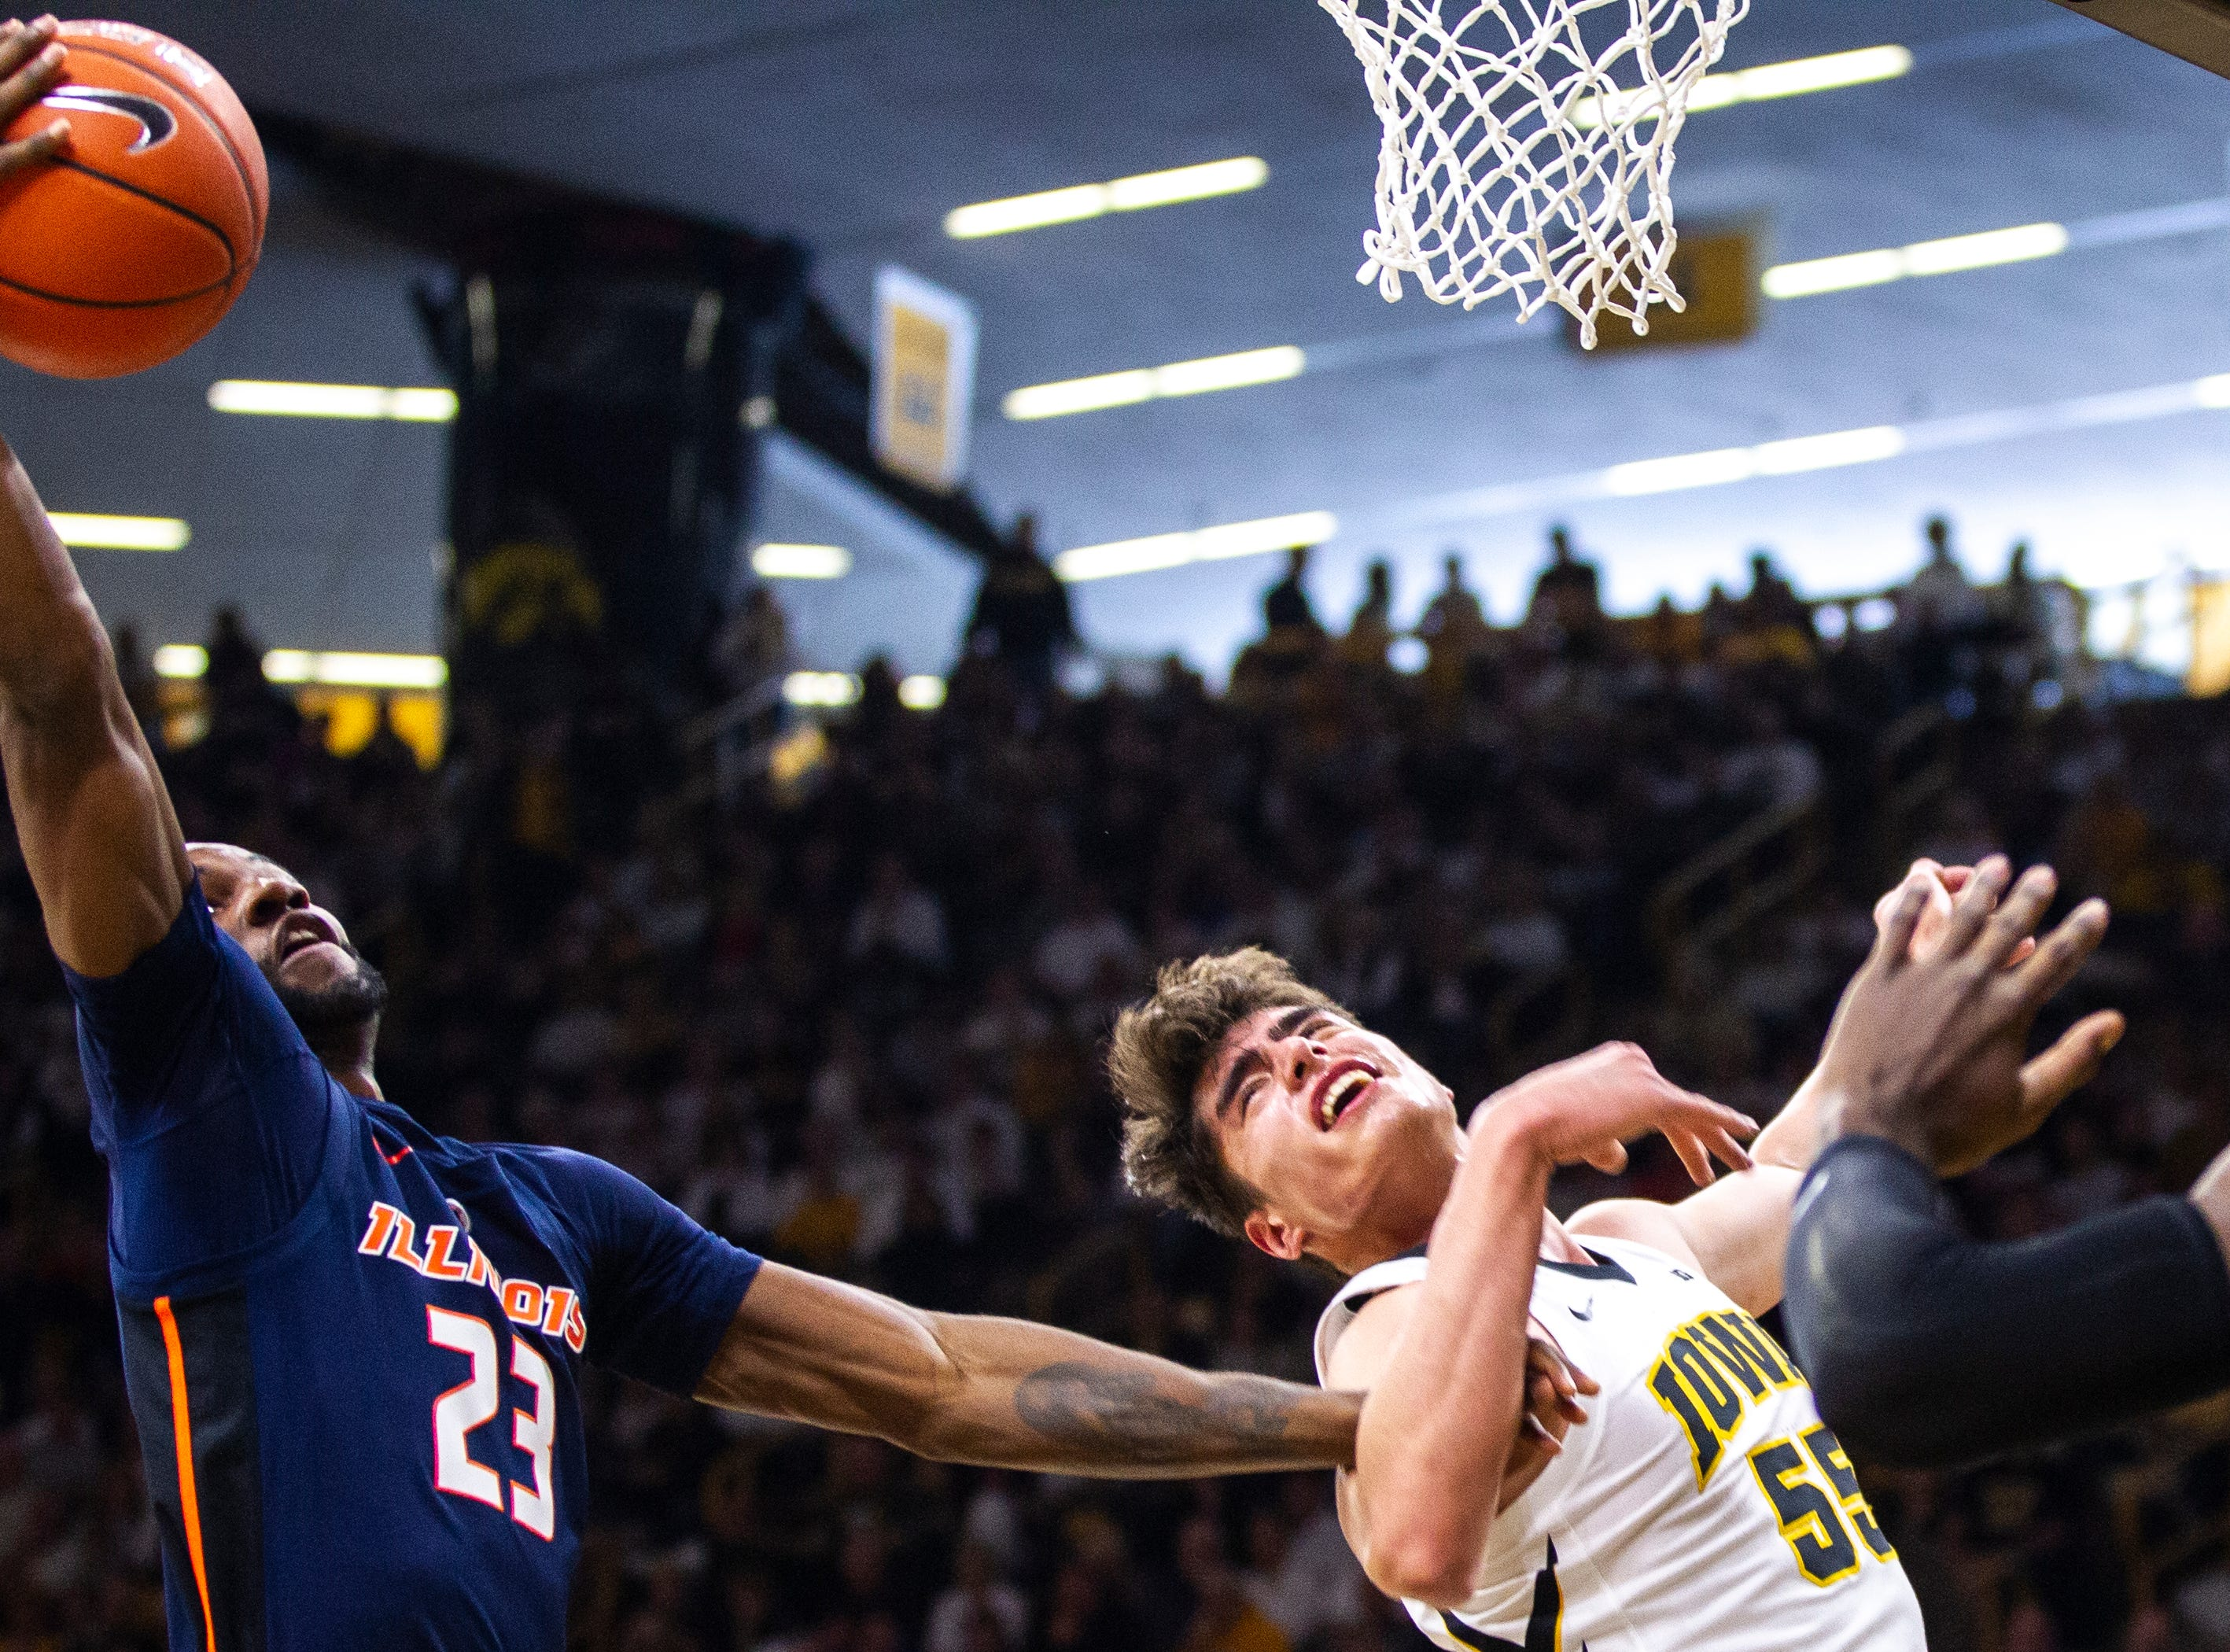 Illinois' Aaron Jordan (23) pulls in a rebound past Iowa forward Luka Garza (55) during a NCAA Big Ten Conference men's basketball game on Sunday, Jan. 20, 2019, at Carver-Hawkeye Arena in Iowa City, Iowa.